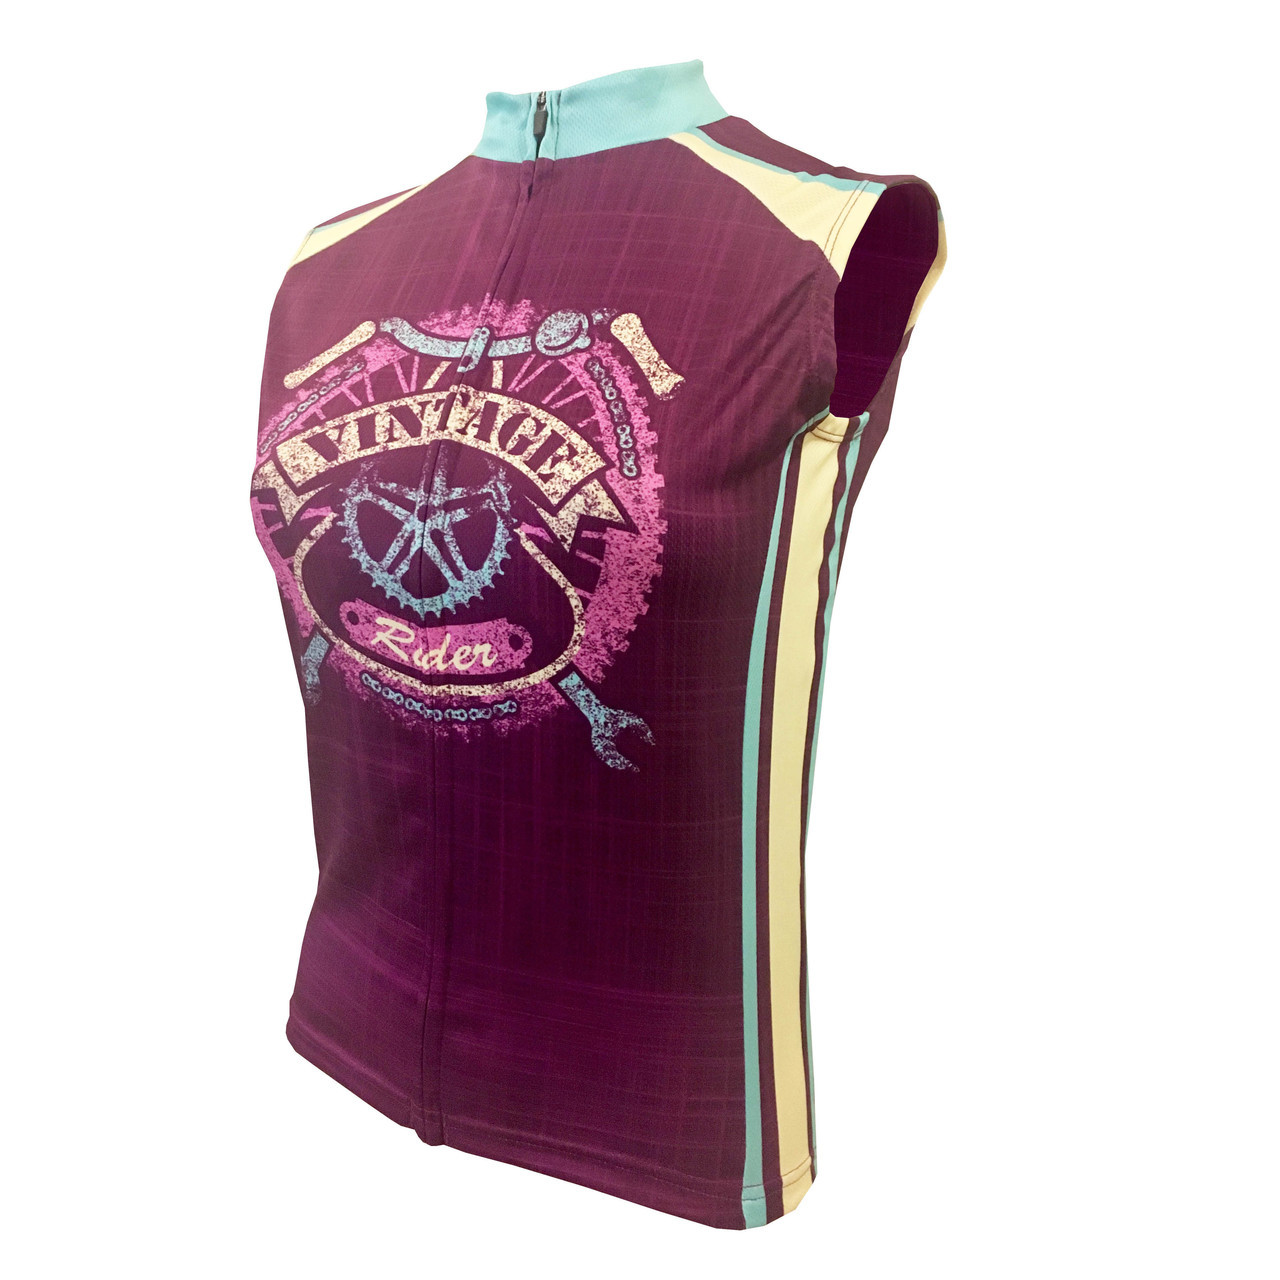 0315cbefb2bc4 VINTAGE RIDER WOMEN S SLEEVELESS CYCLING JERSEY. Your Price   39.99 (You  save  20.00). Image 1